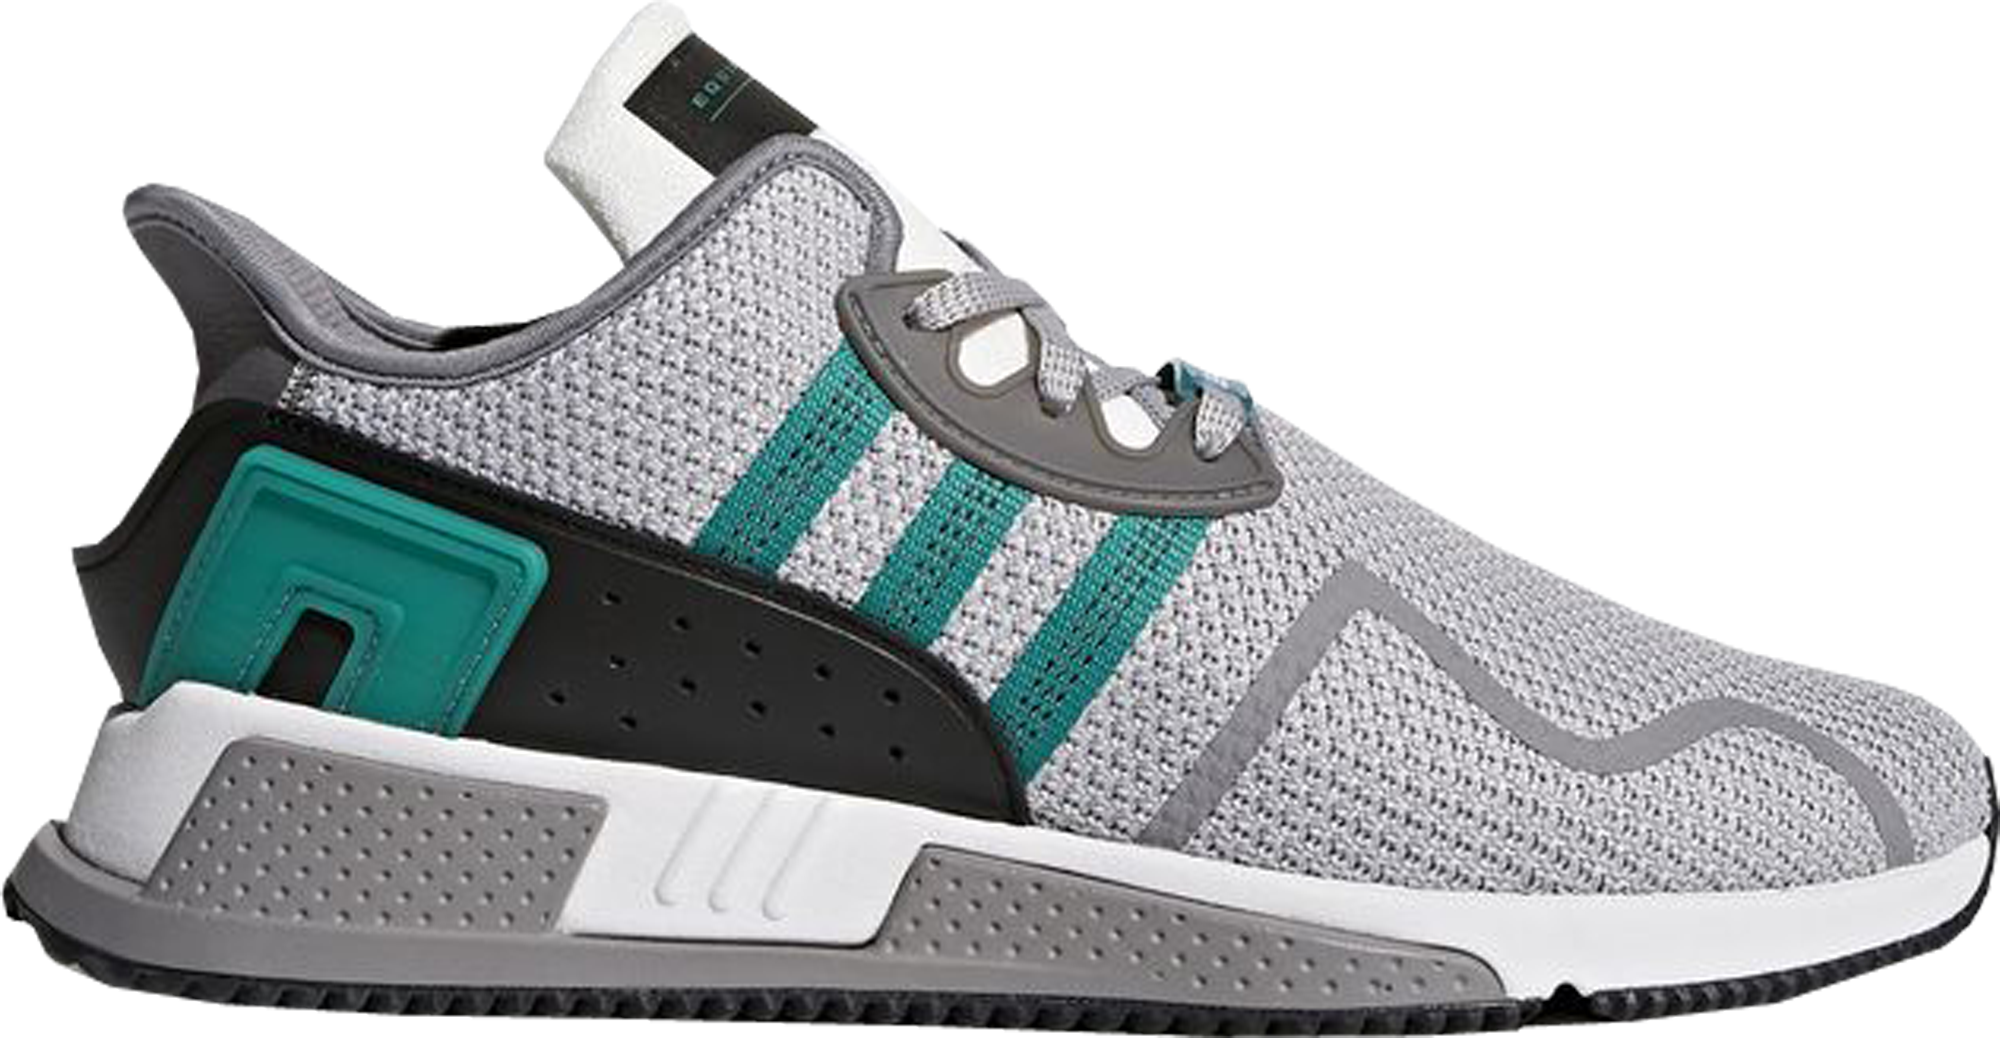 adidas EQT Cushion Adv Grey Sub Green